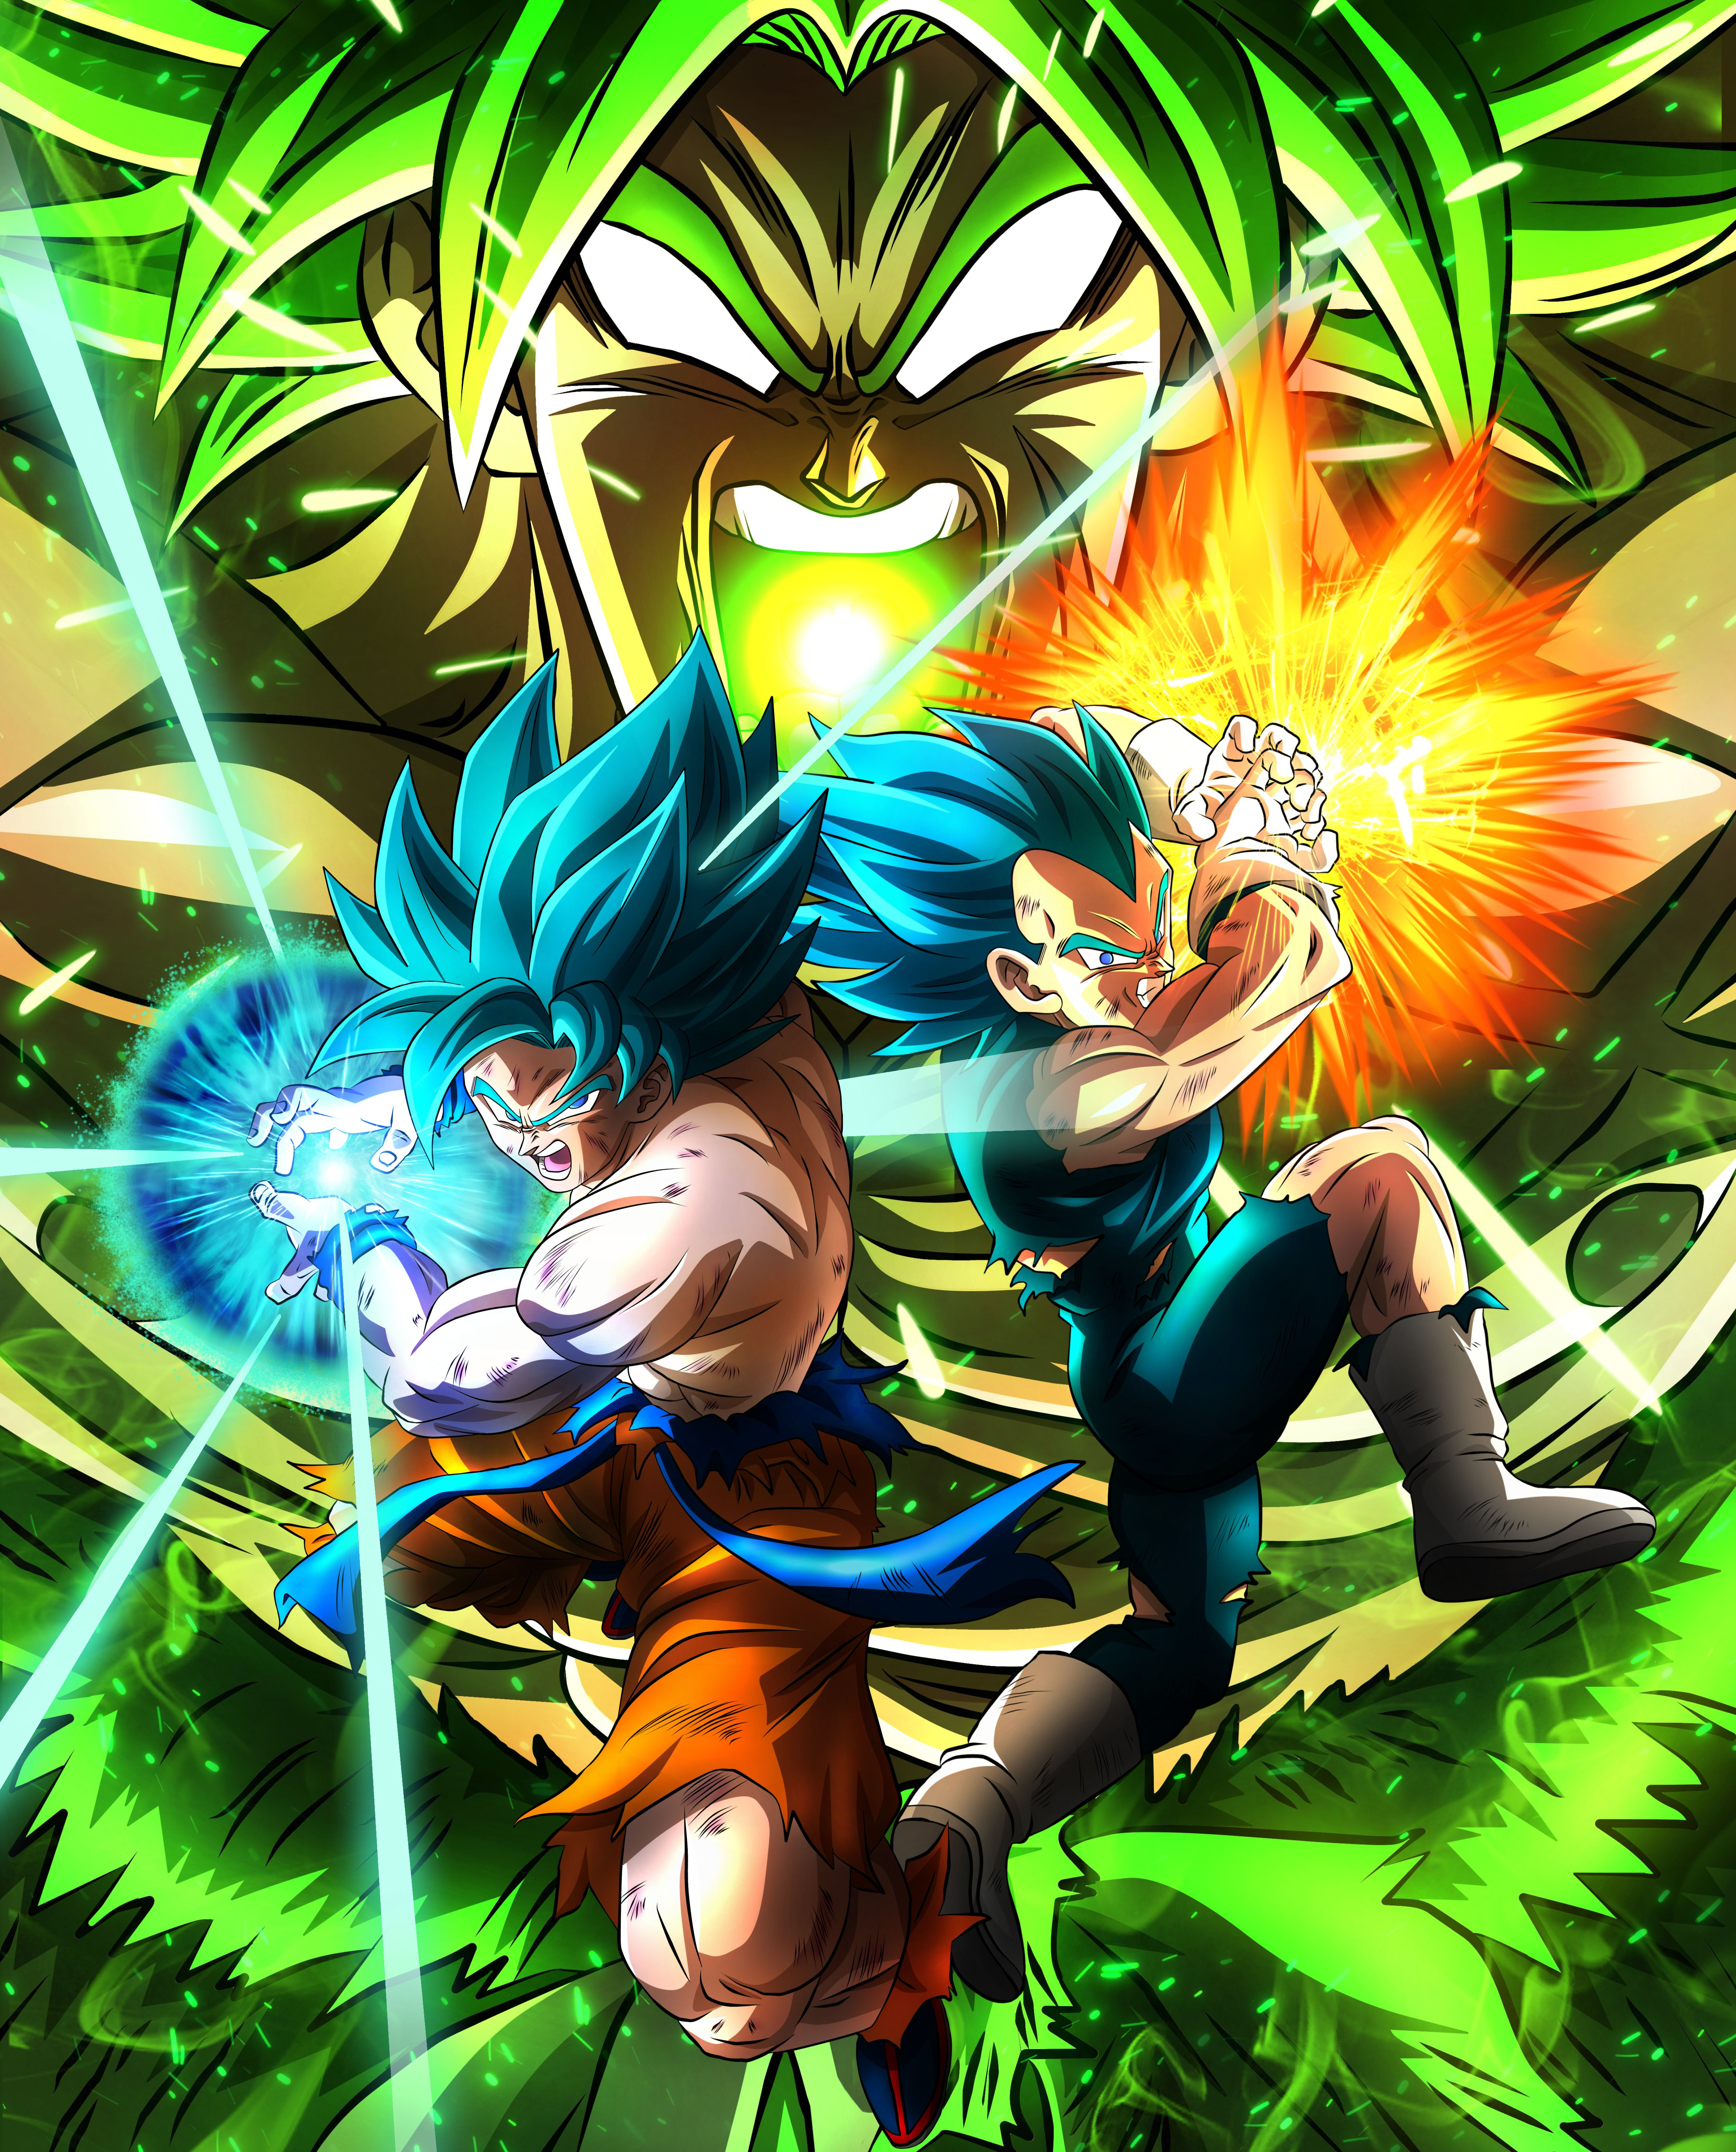 Dragon Ball Super By Dt501061 On Deviantart Anime Dragon Ball Super Dragon Ball Artwork Dragon Ball Wallpaper Iphone